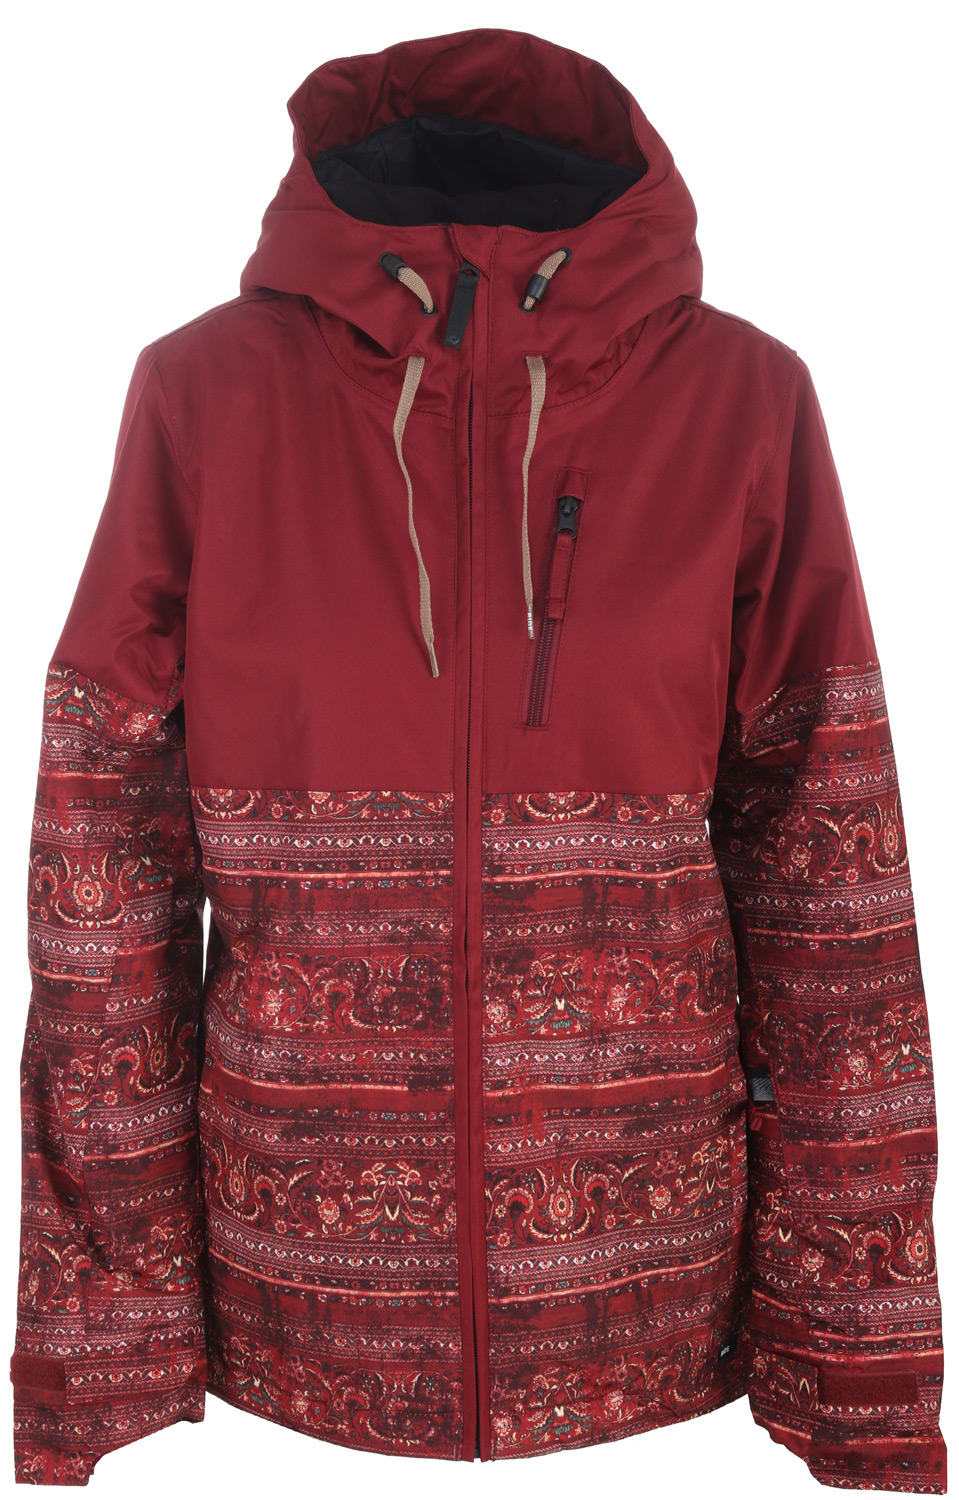 On Sale Ride Wedgewood Snowboard Jacket Womens Up To 40 Off